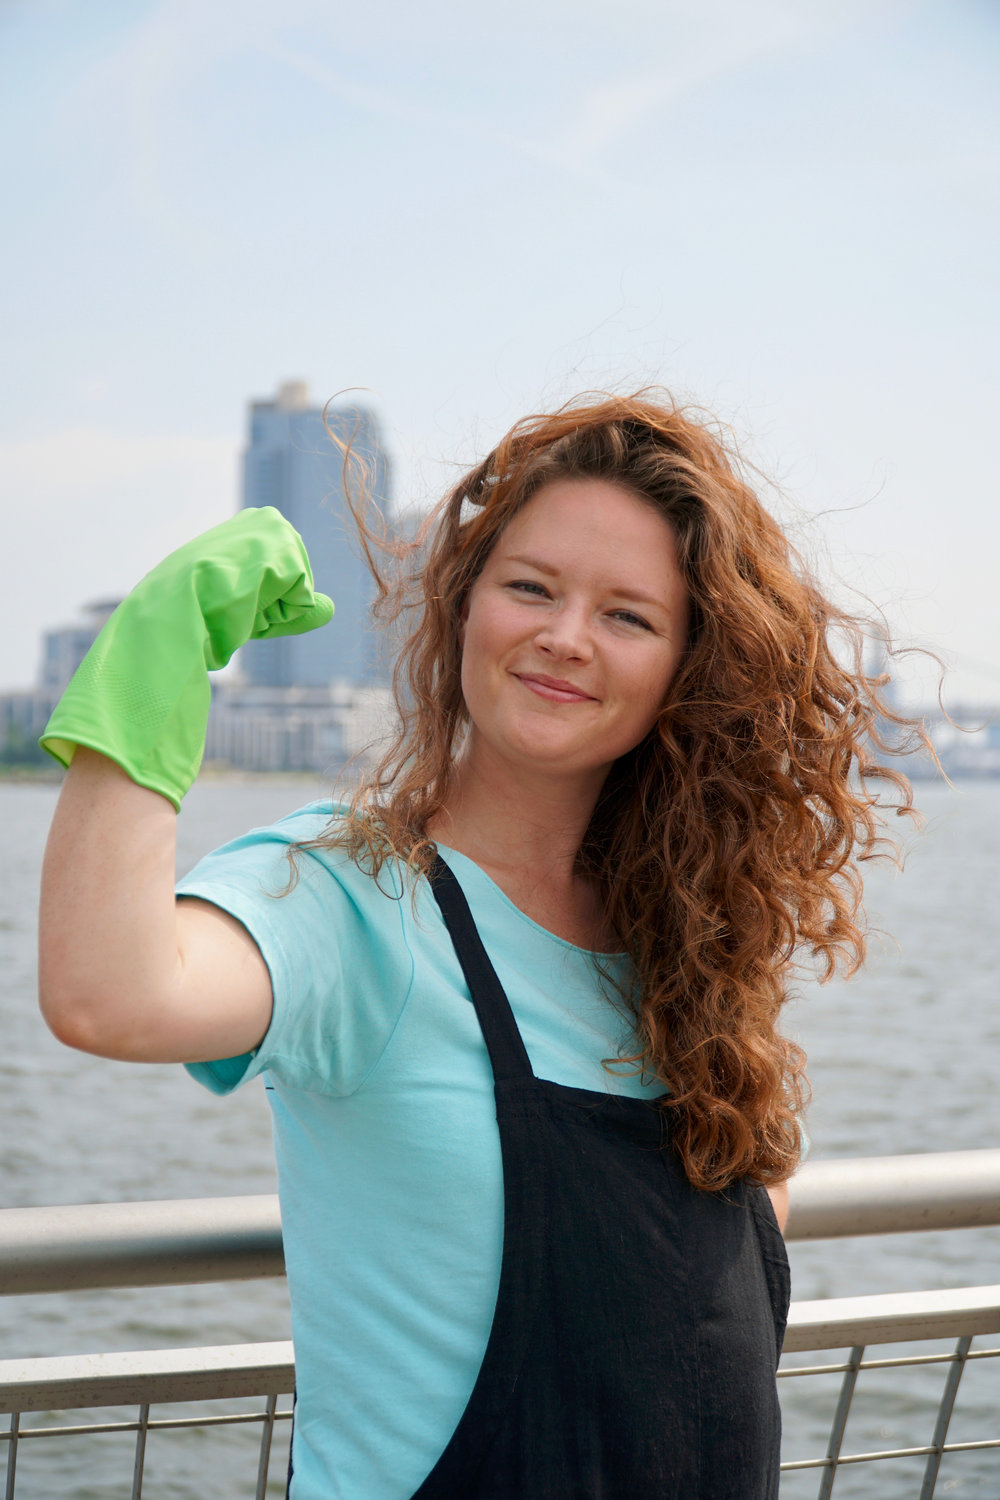 Earth Angel founder and NYU film school graduate Emellie O'Brien helps the movie industry reduce its carbon footprint.